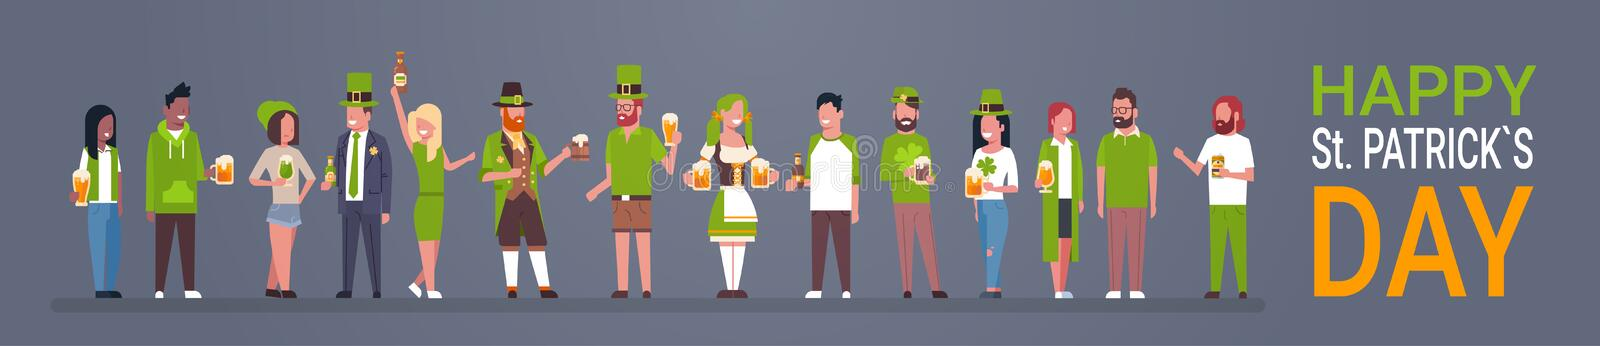 Happy St. Patrick Day Party Poster, Group Of People In Green Clothes Drinking Beer Horizontal Banner stock illustration